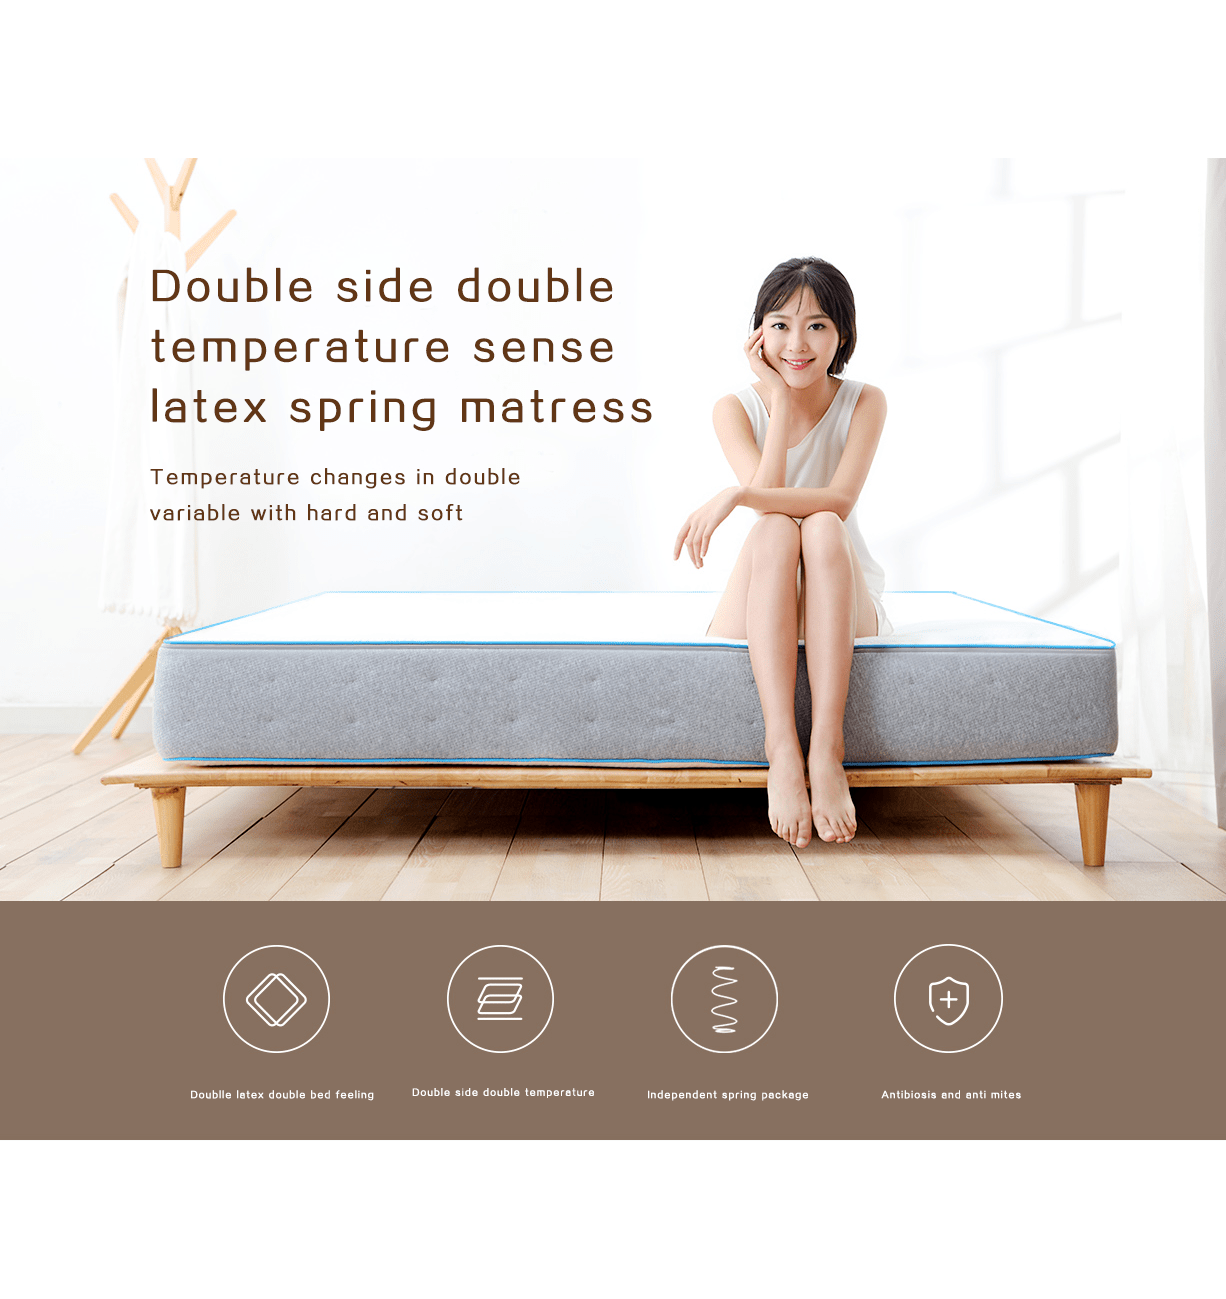 8H Double Sided Double Temperature M5 mattress - Latest Living